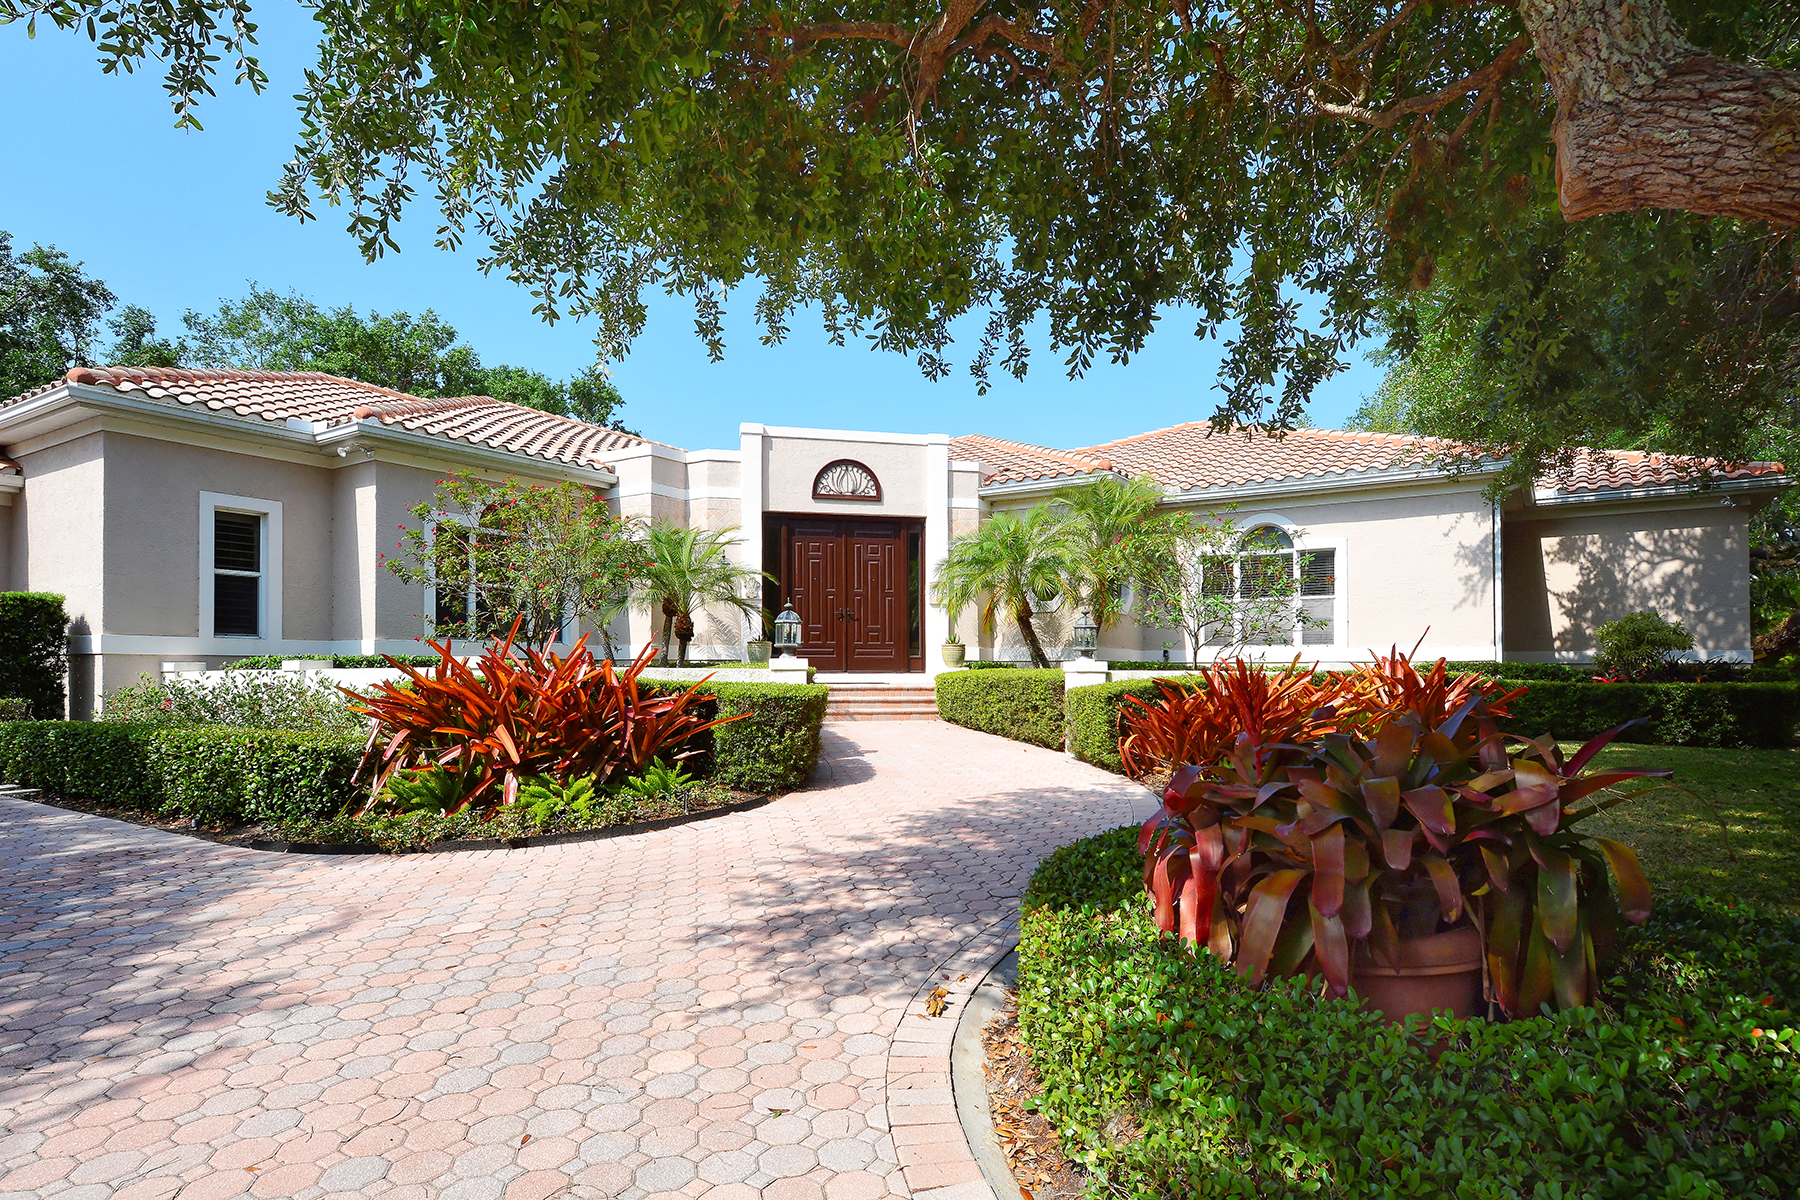 Single Family Home for Sale at 3347 Sabal Cove Way , Longboat Key, FL 34228 3347 Sabal Cove Way, Longboat Key, Florida 34228 United States